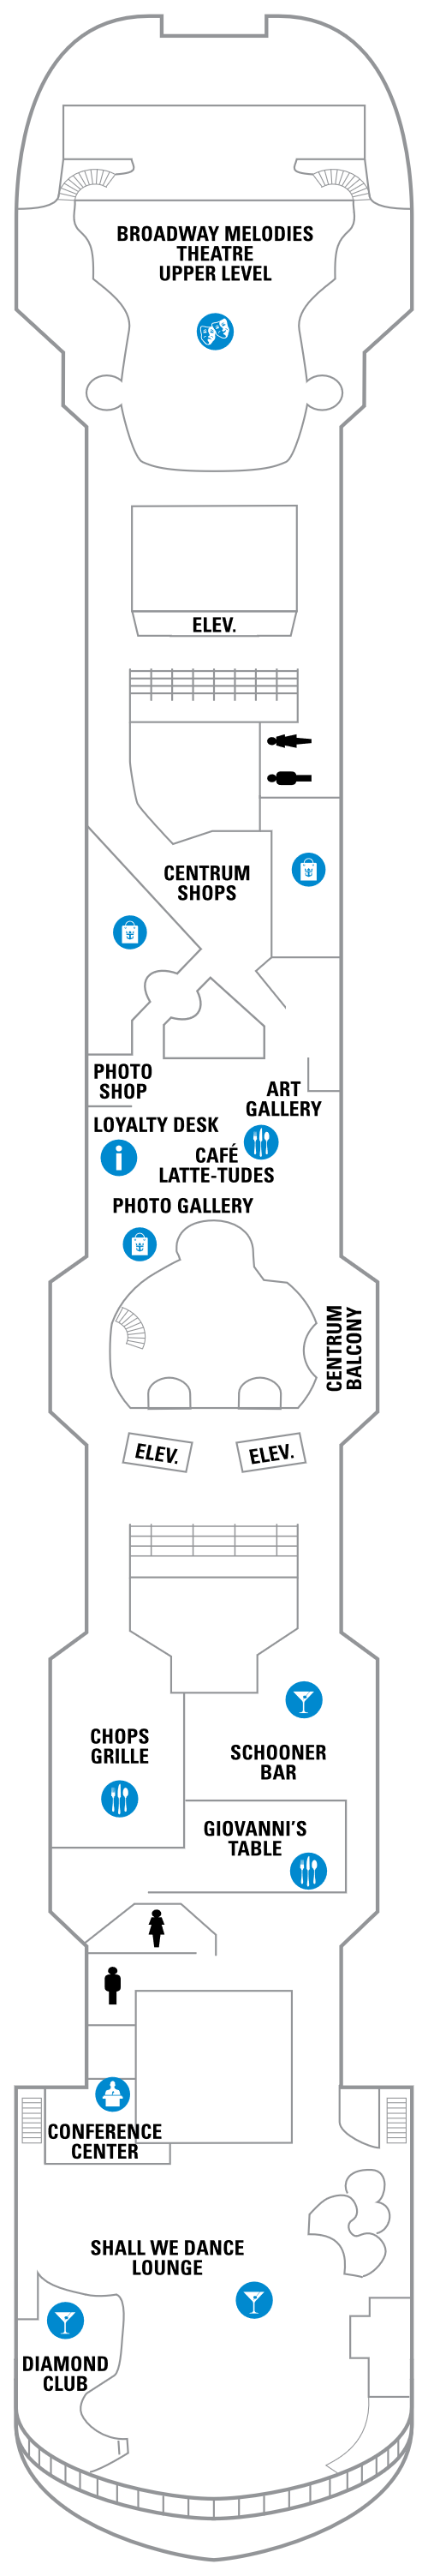 Rhapsody Of The Seas Deck 6 layout